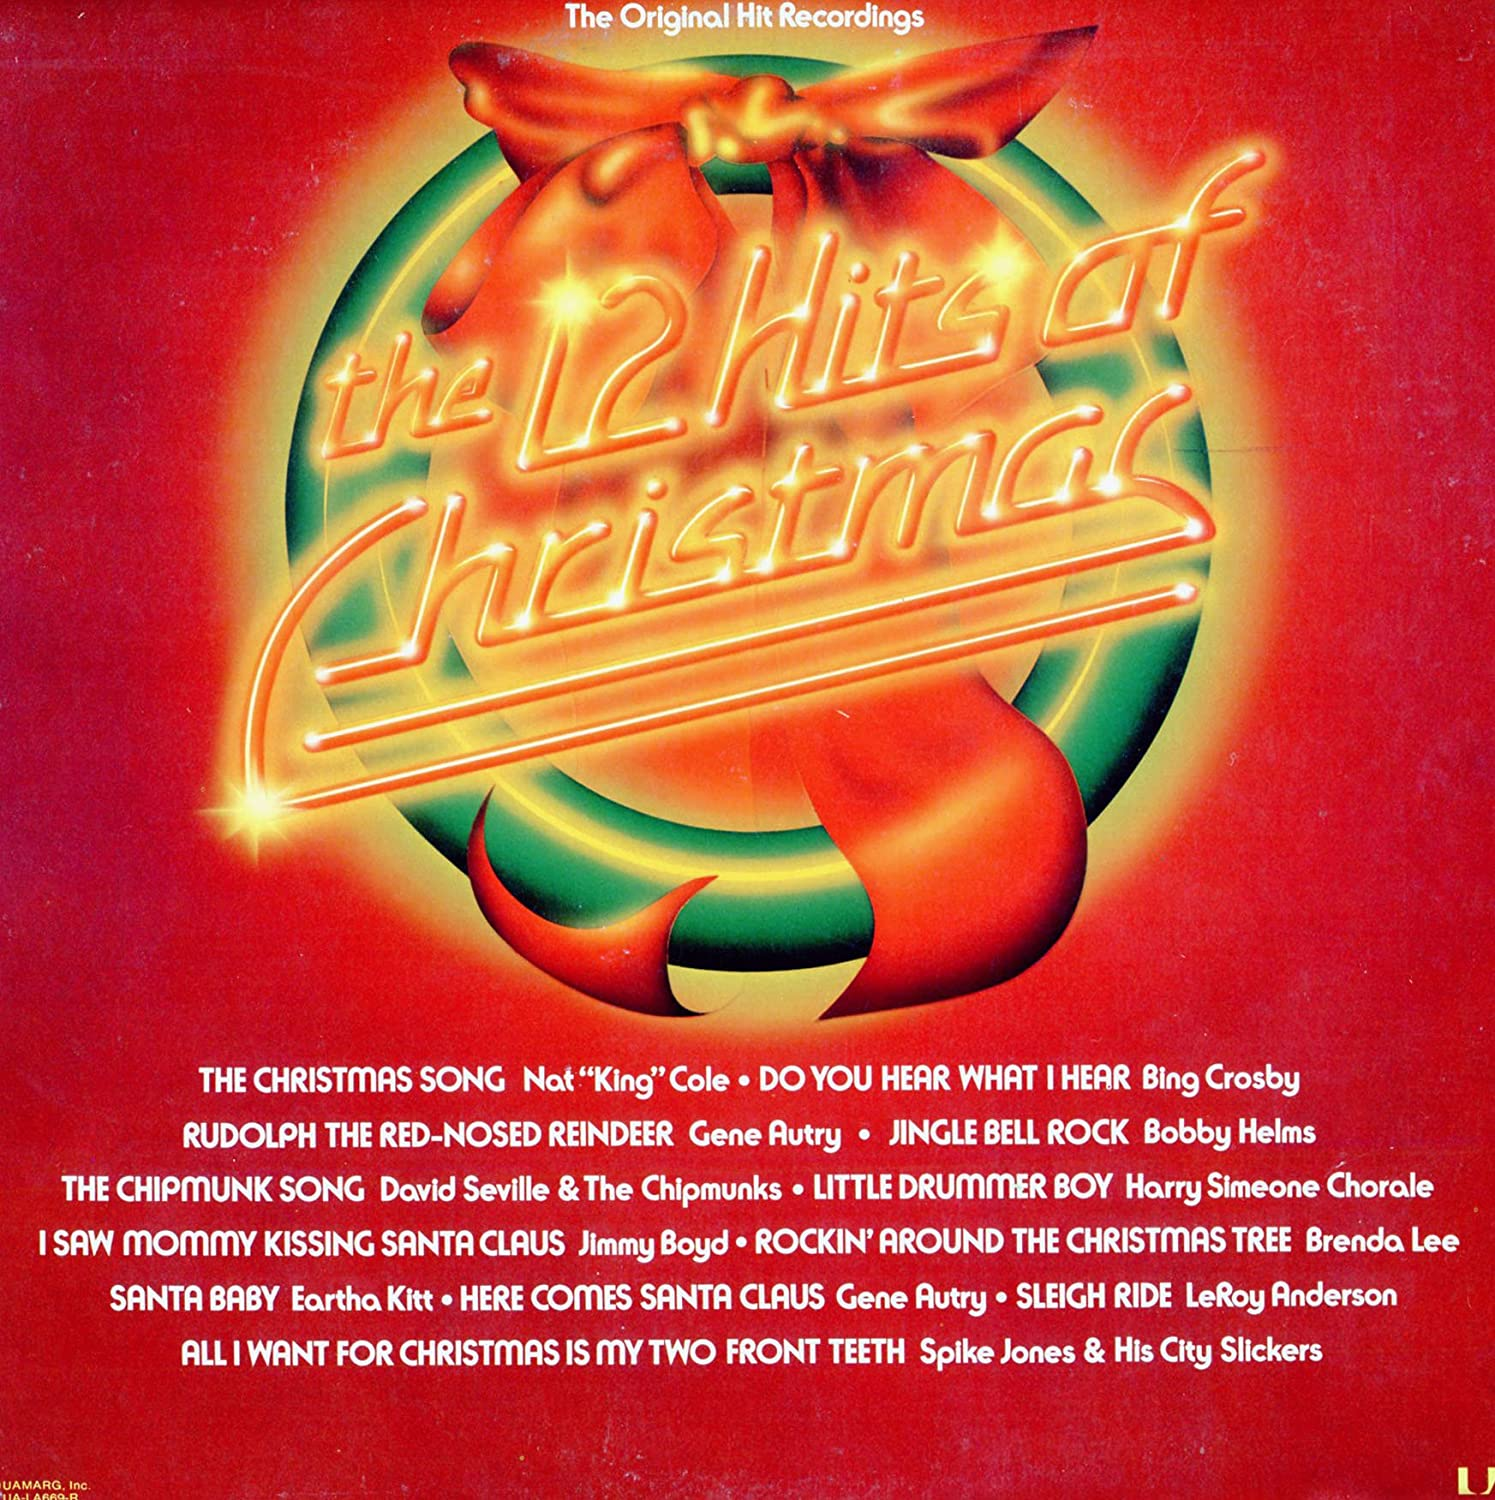 The 12 Hits Of Christmas Vinyl Lp Compilation